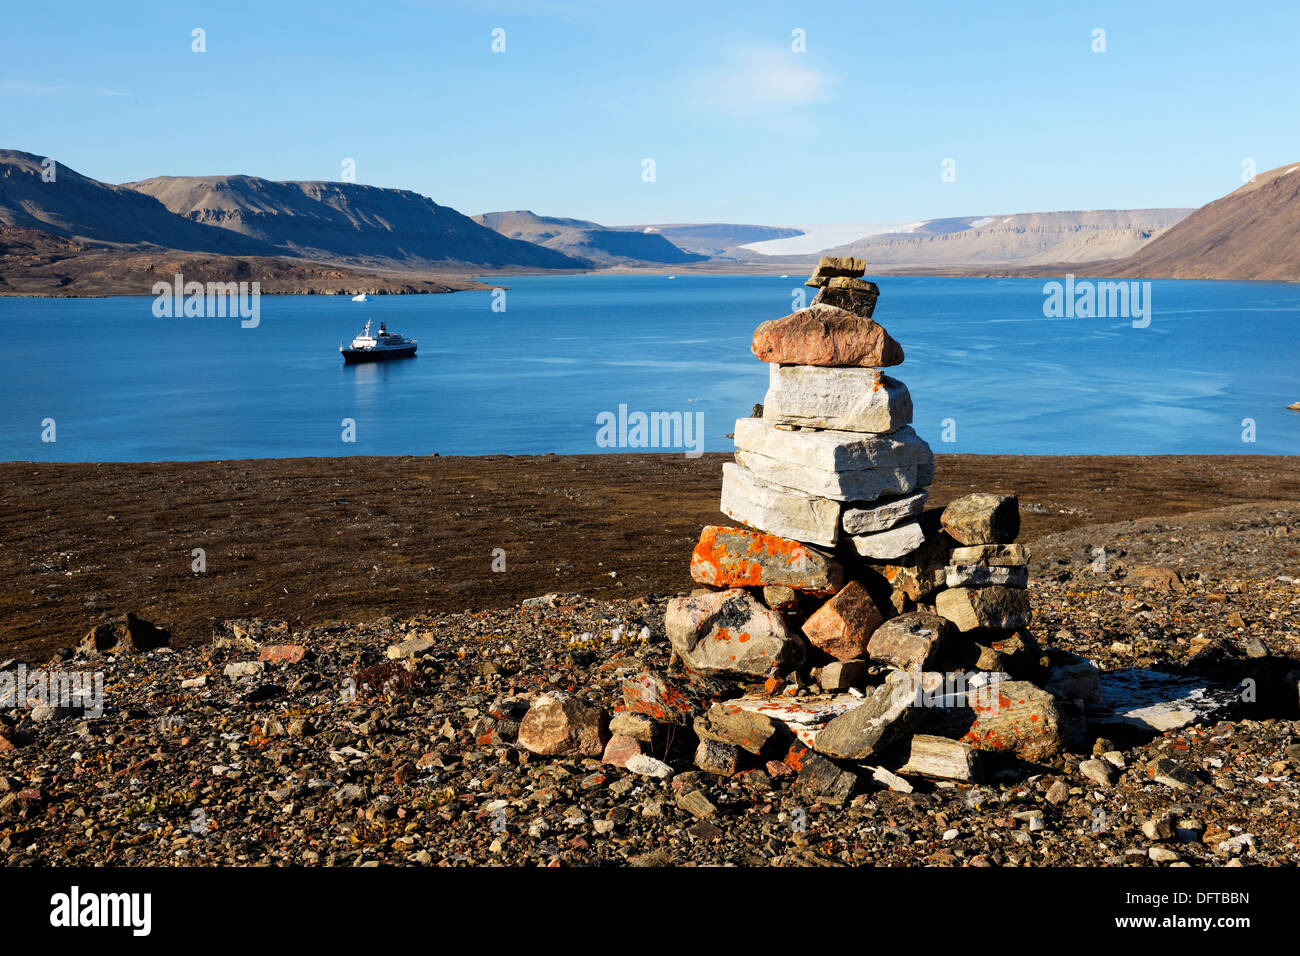 View from an Inukshuk of the Sunshine Fjord and a cruise ship cruising through the sea, Nunavut, Canada - Stock Image